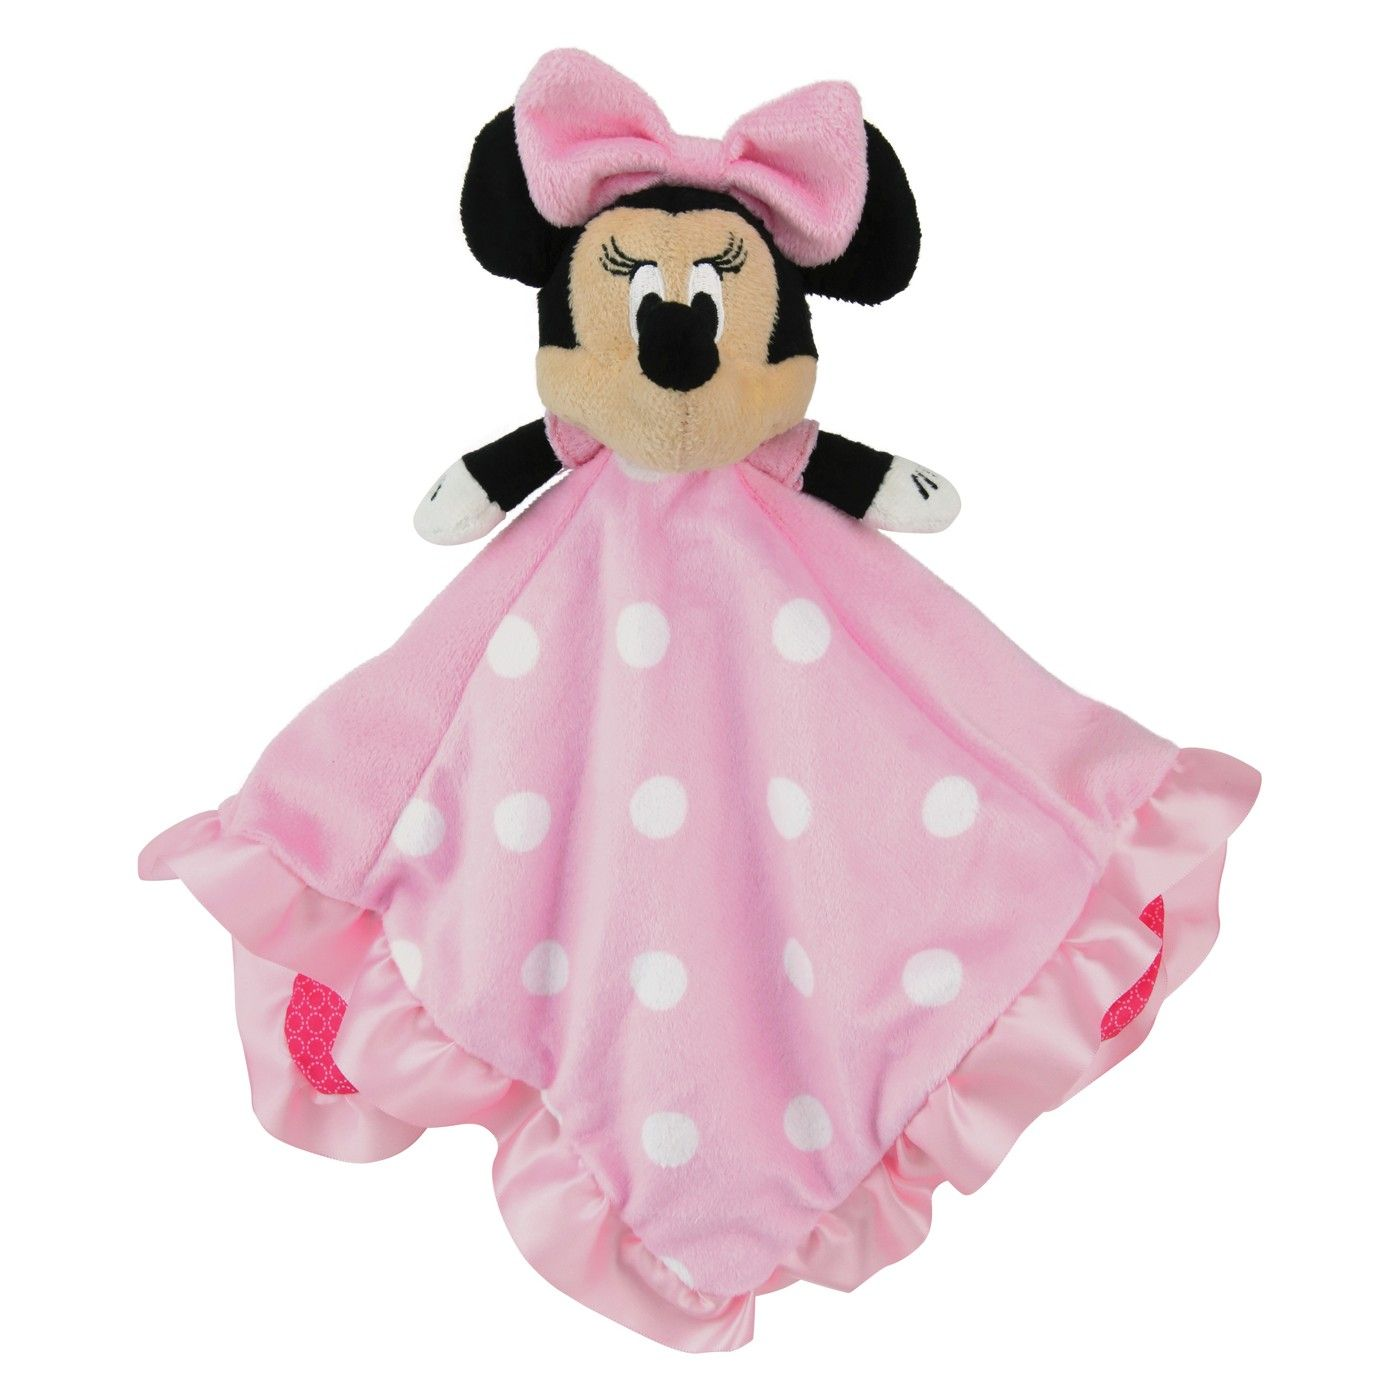 90b290bb56b6 Disney Baby Minnie Mouse Blanket - image 1 of 1